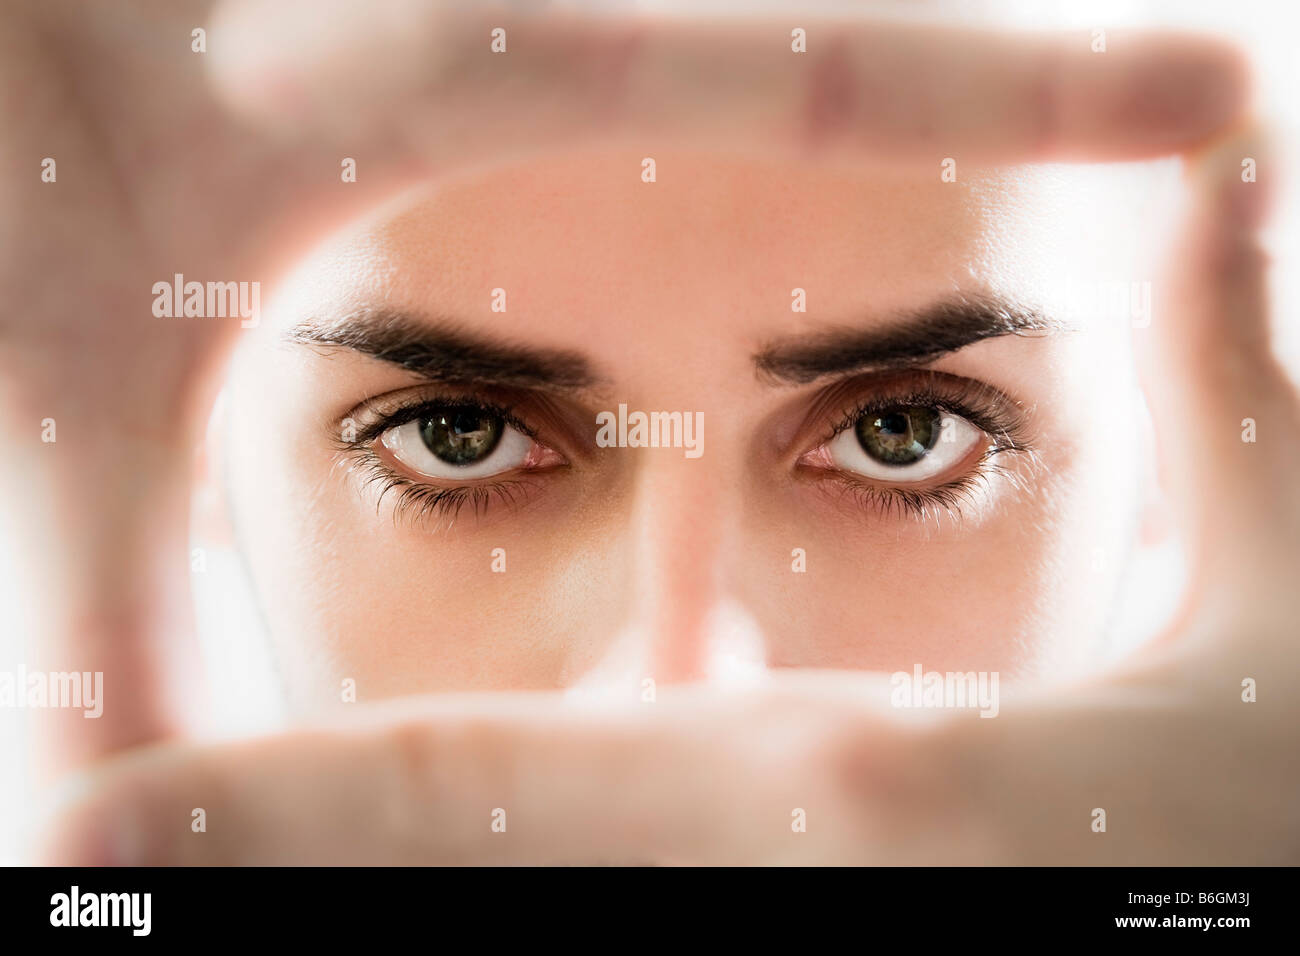 Portrait of eyes looking through fingers frame - Stock Image